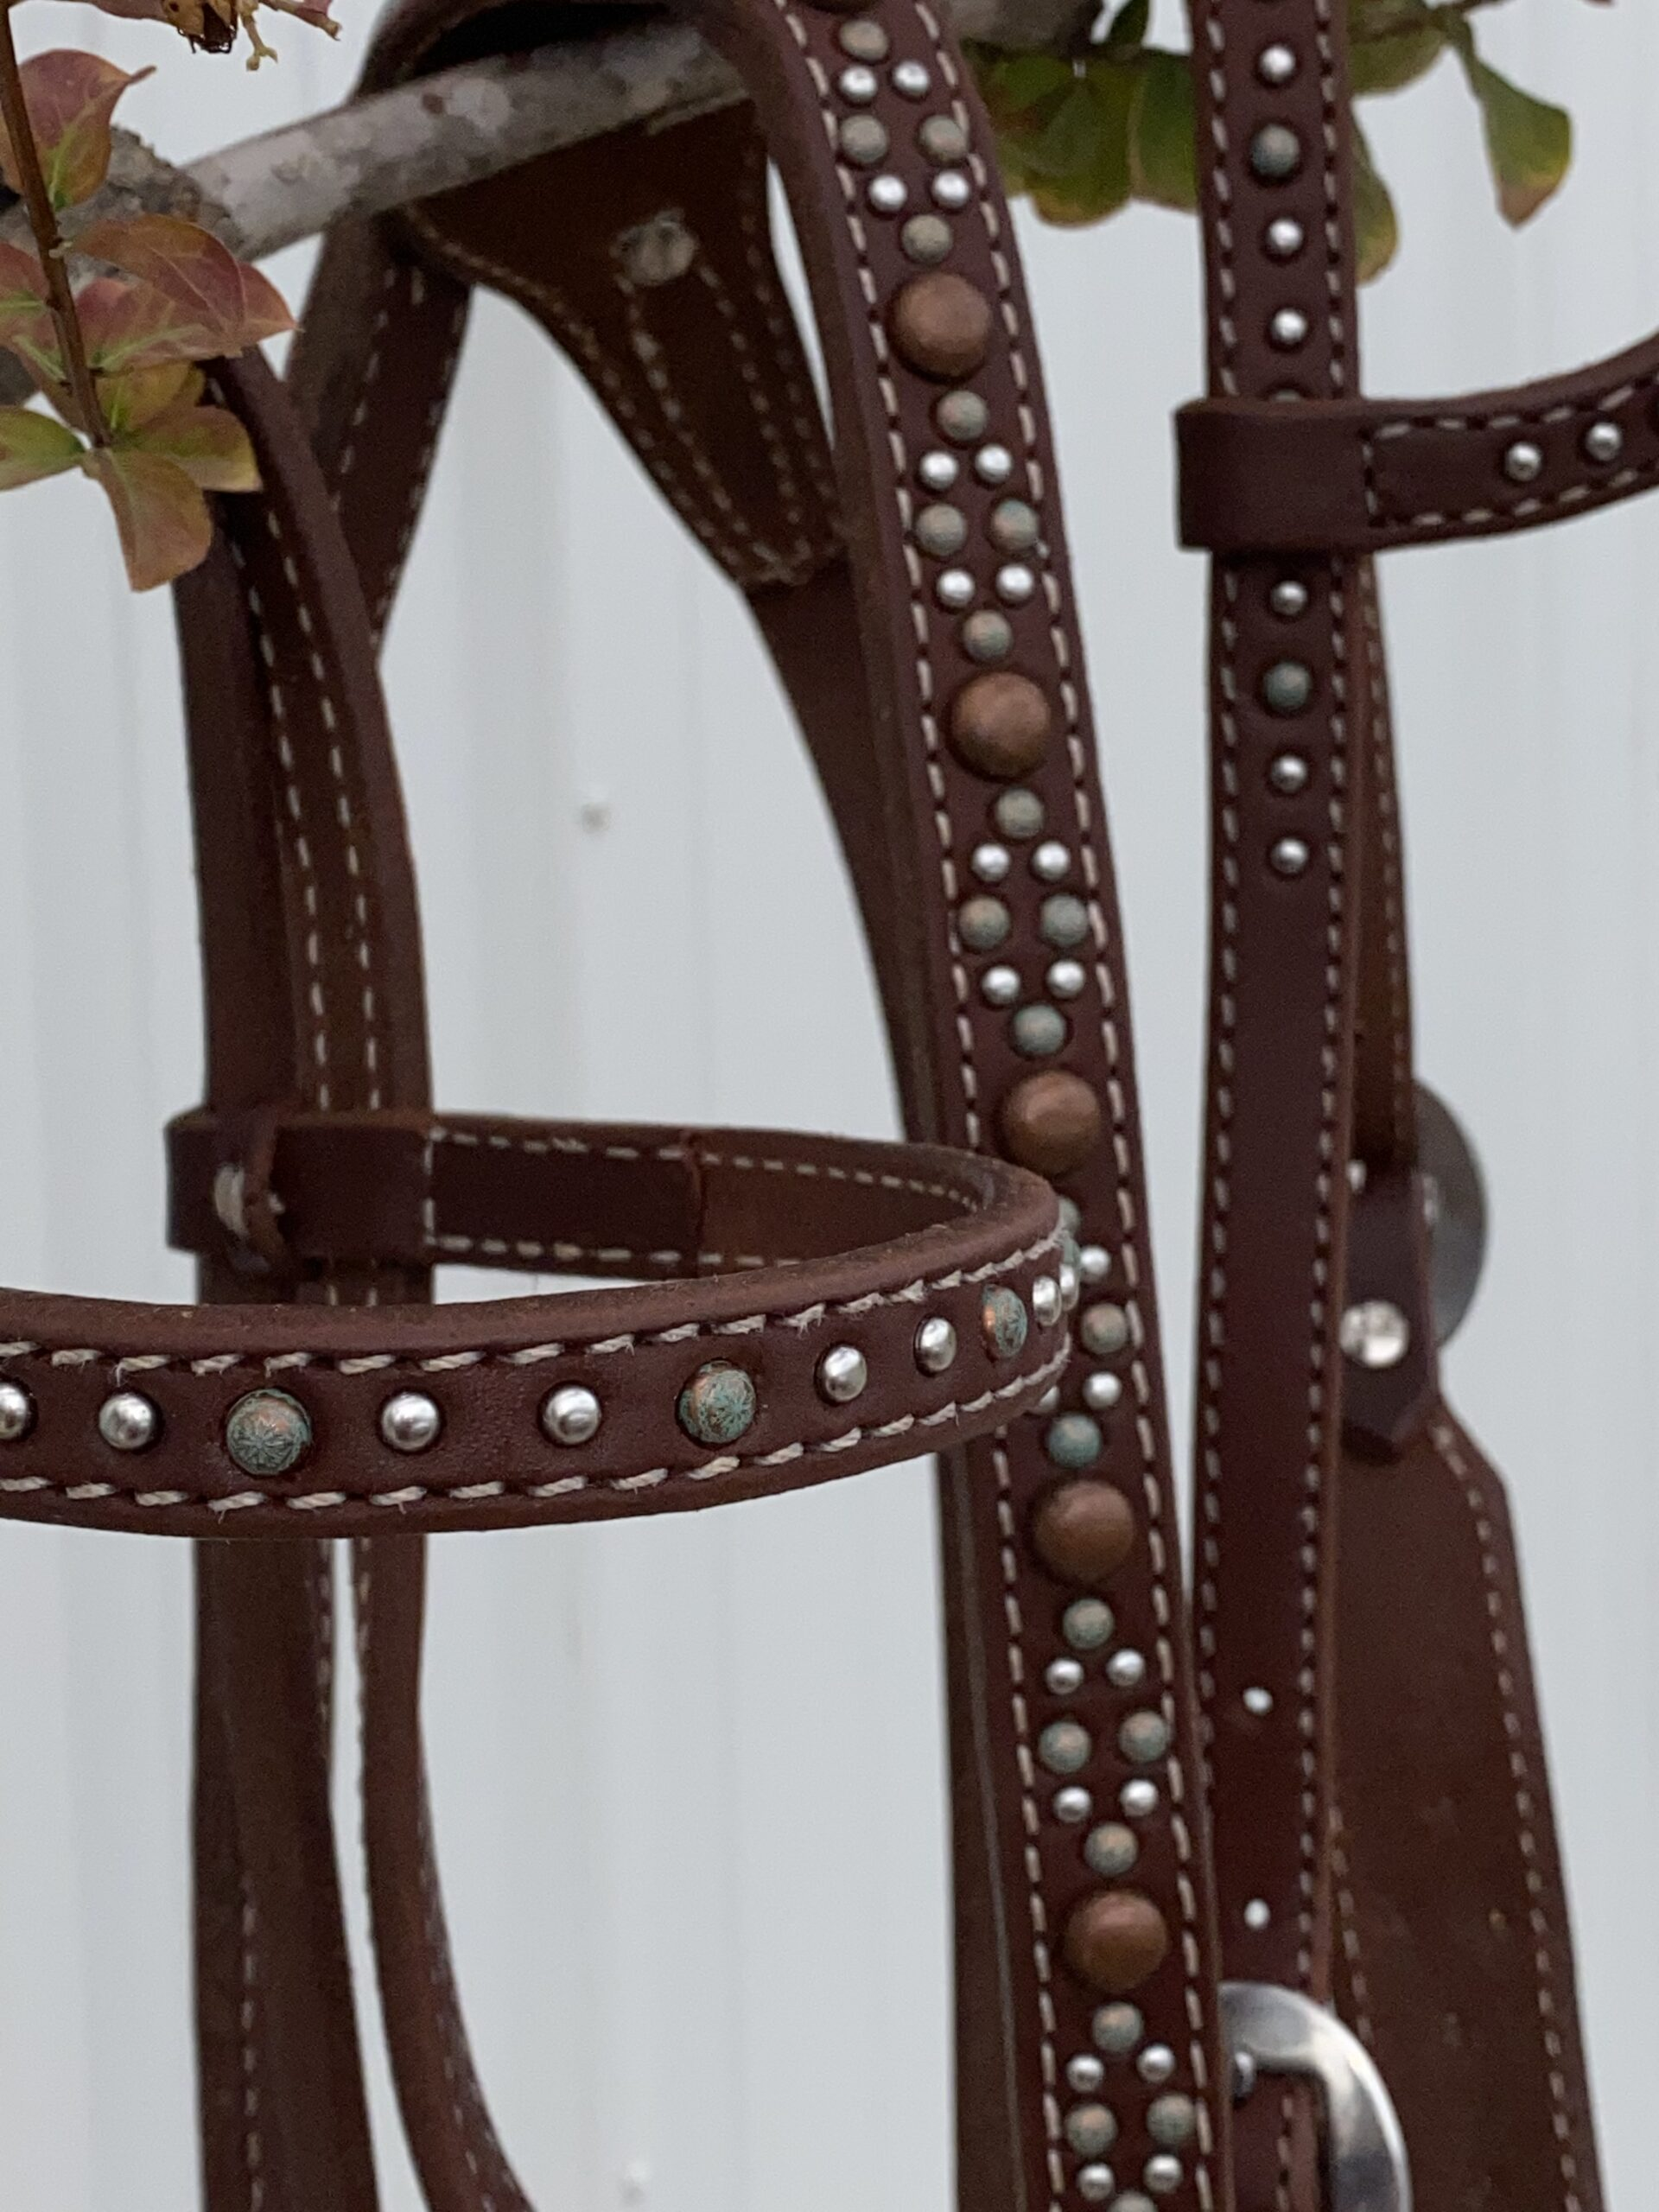 OILED HARNESS LEATHER Diamond details tack treasure of the day